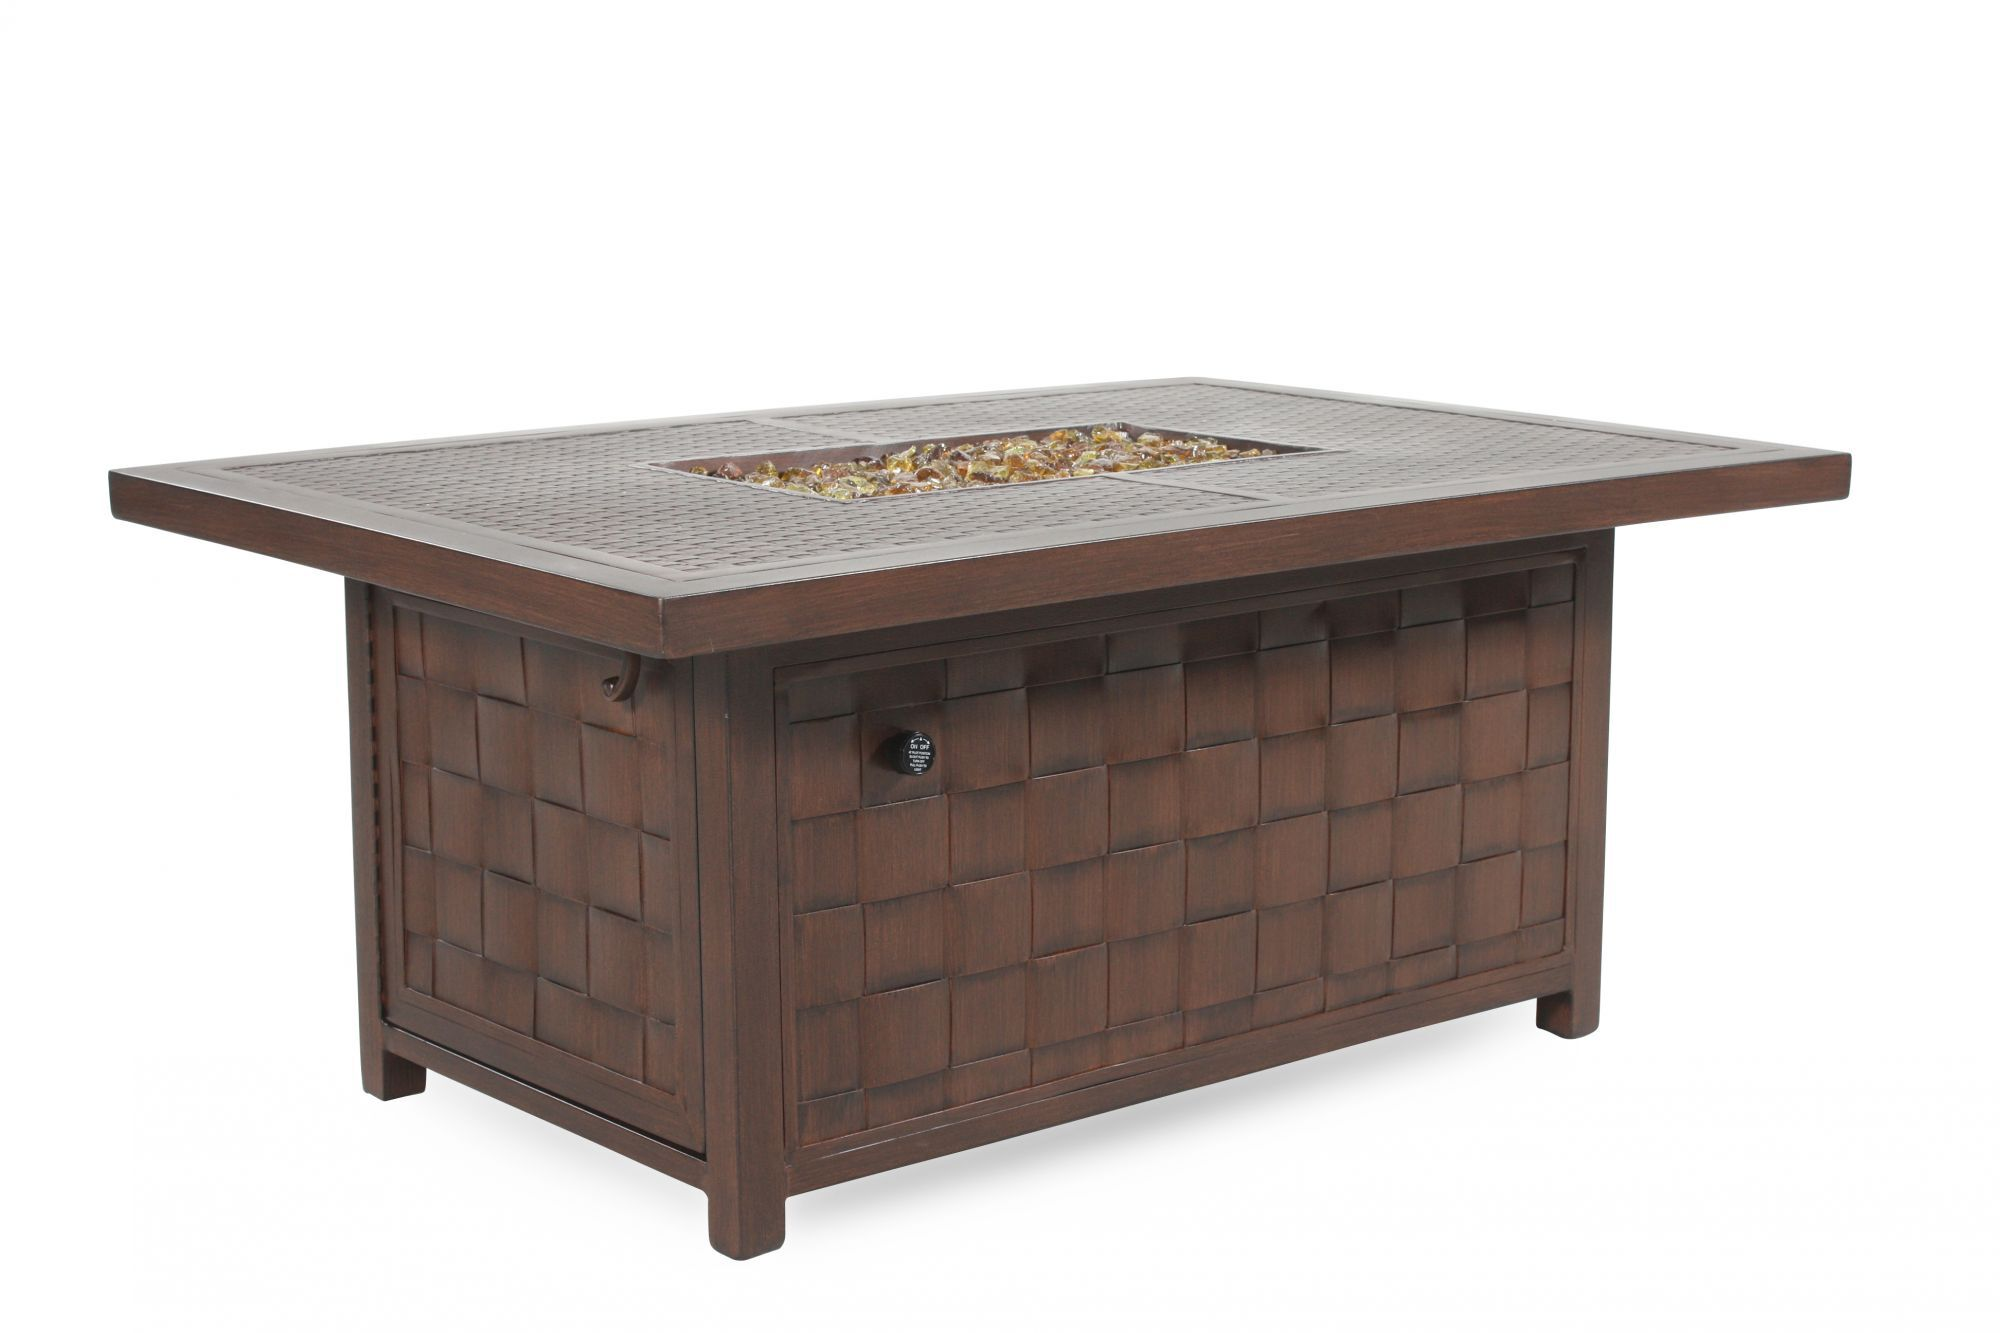 ... Castelle Spanish Bay Patio Fire Pit Coffee Table ...